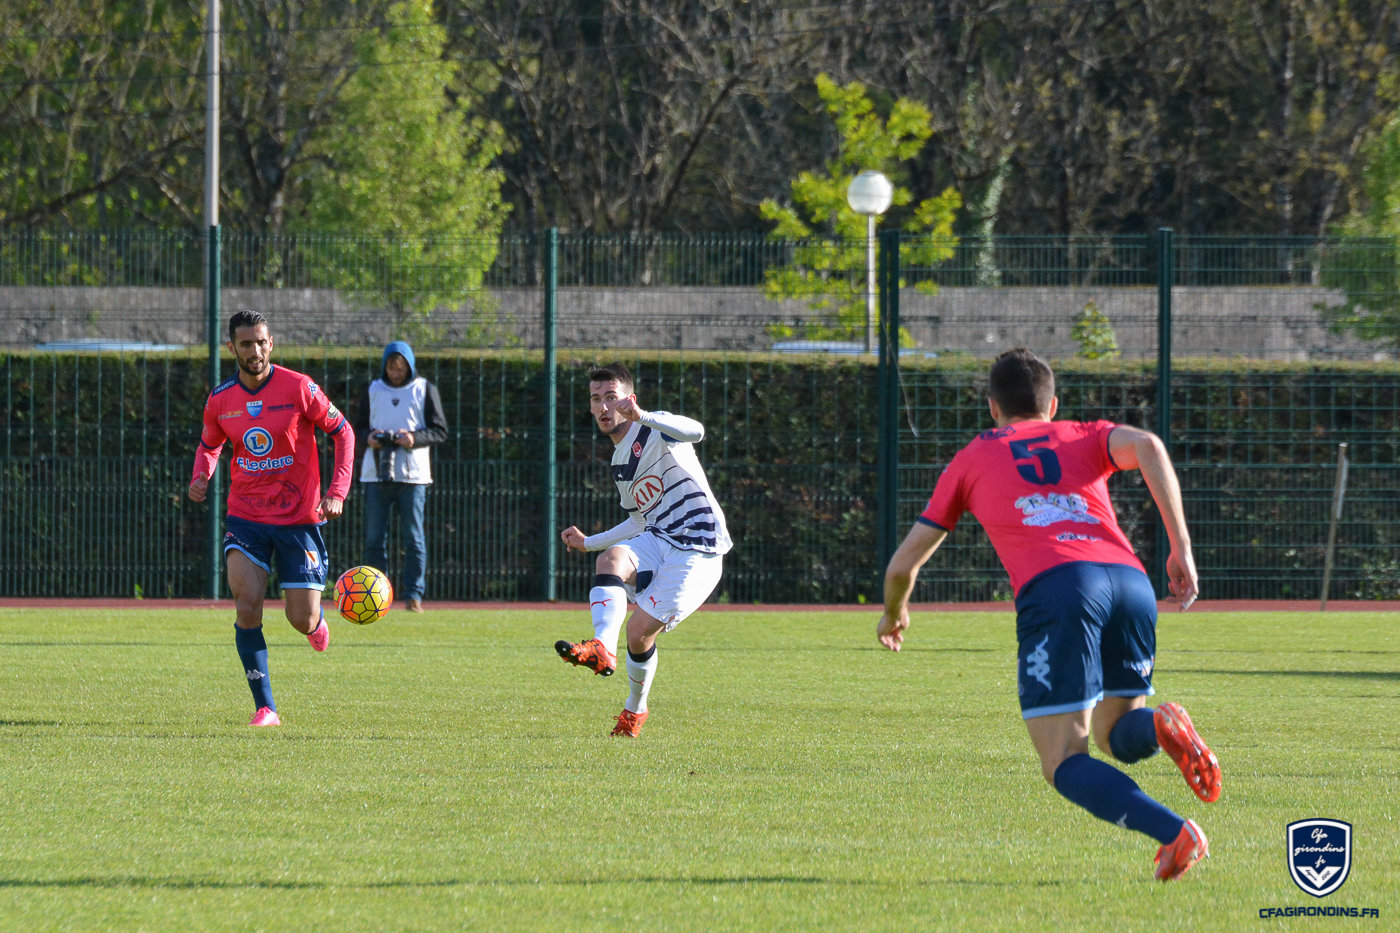 Cfa Girondins : Robin Maulun rempile aux Girondins ! - Formation Girondins